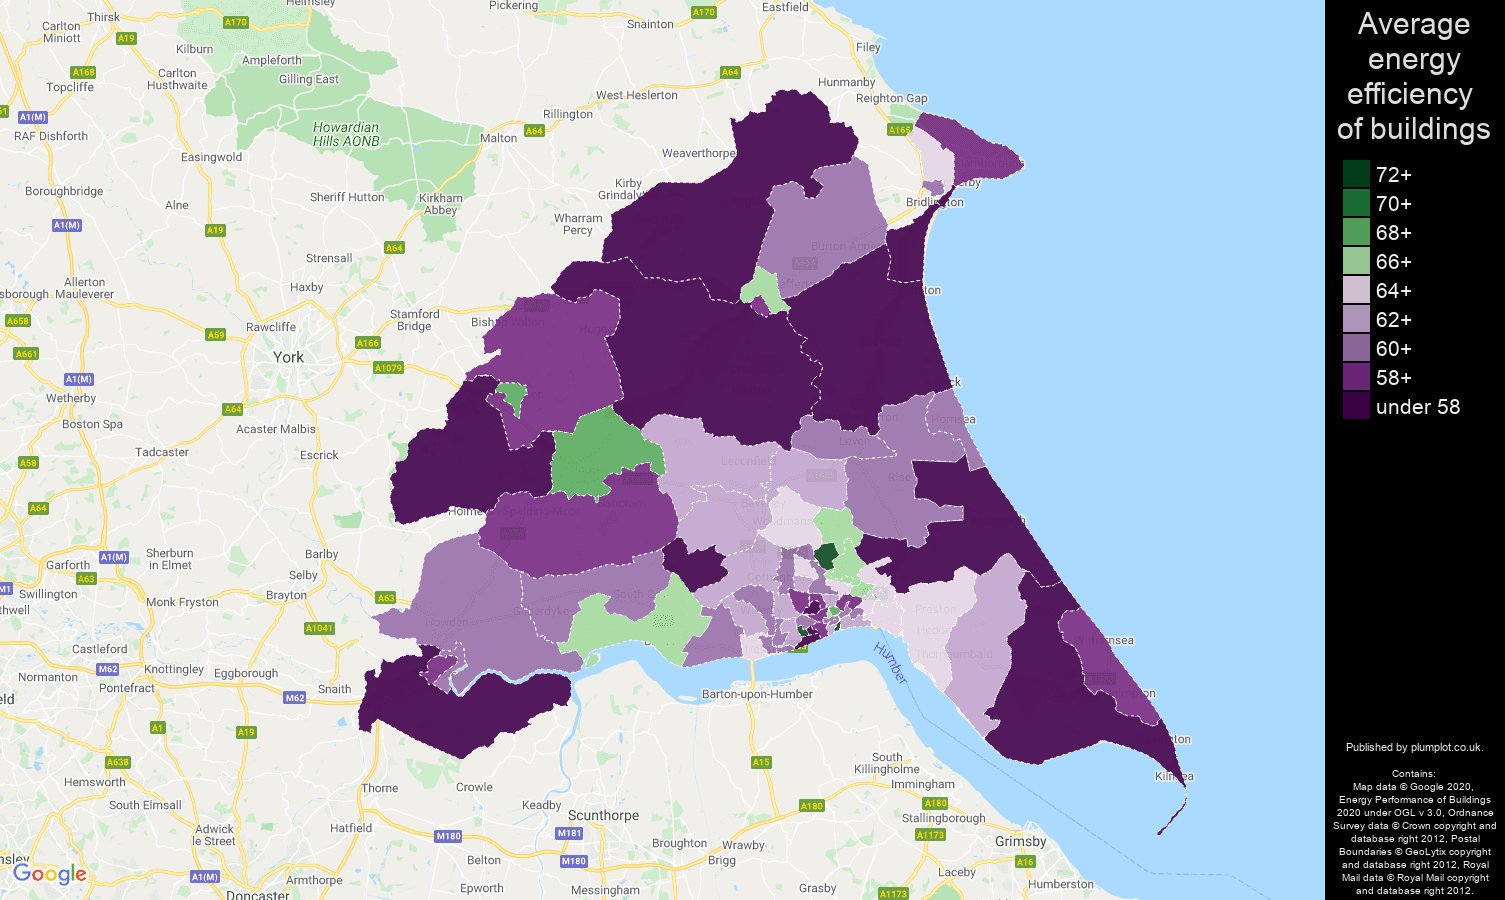 East Riding of Yorkshire map of energy efficiency of houses